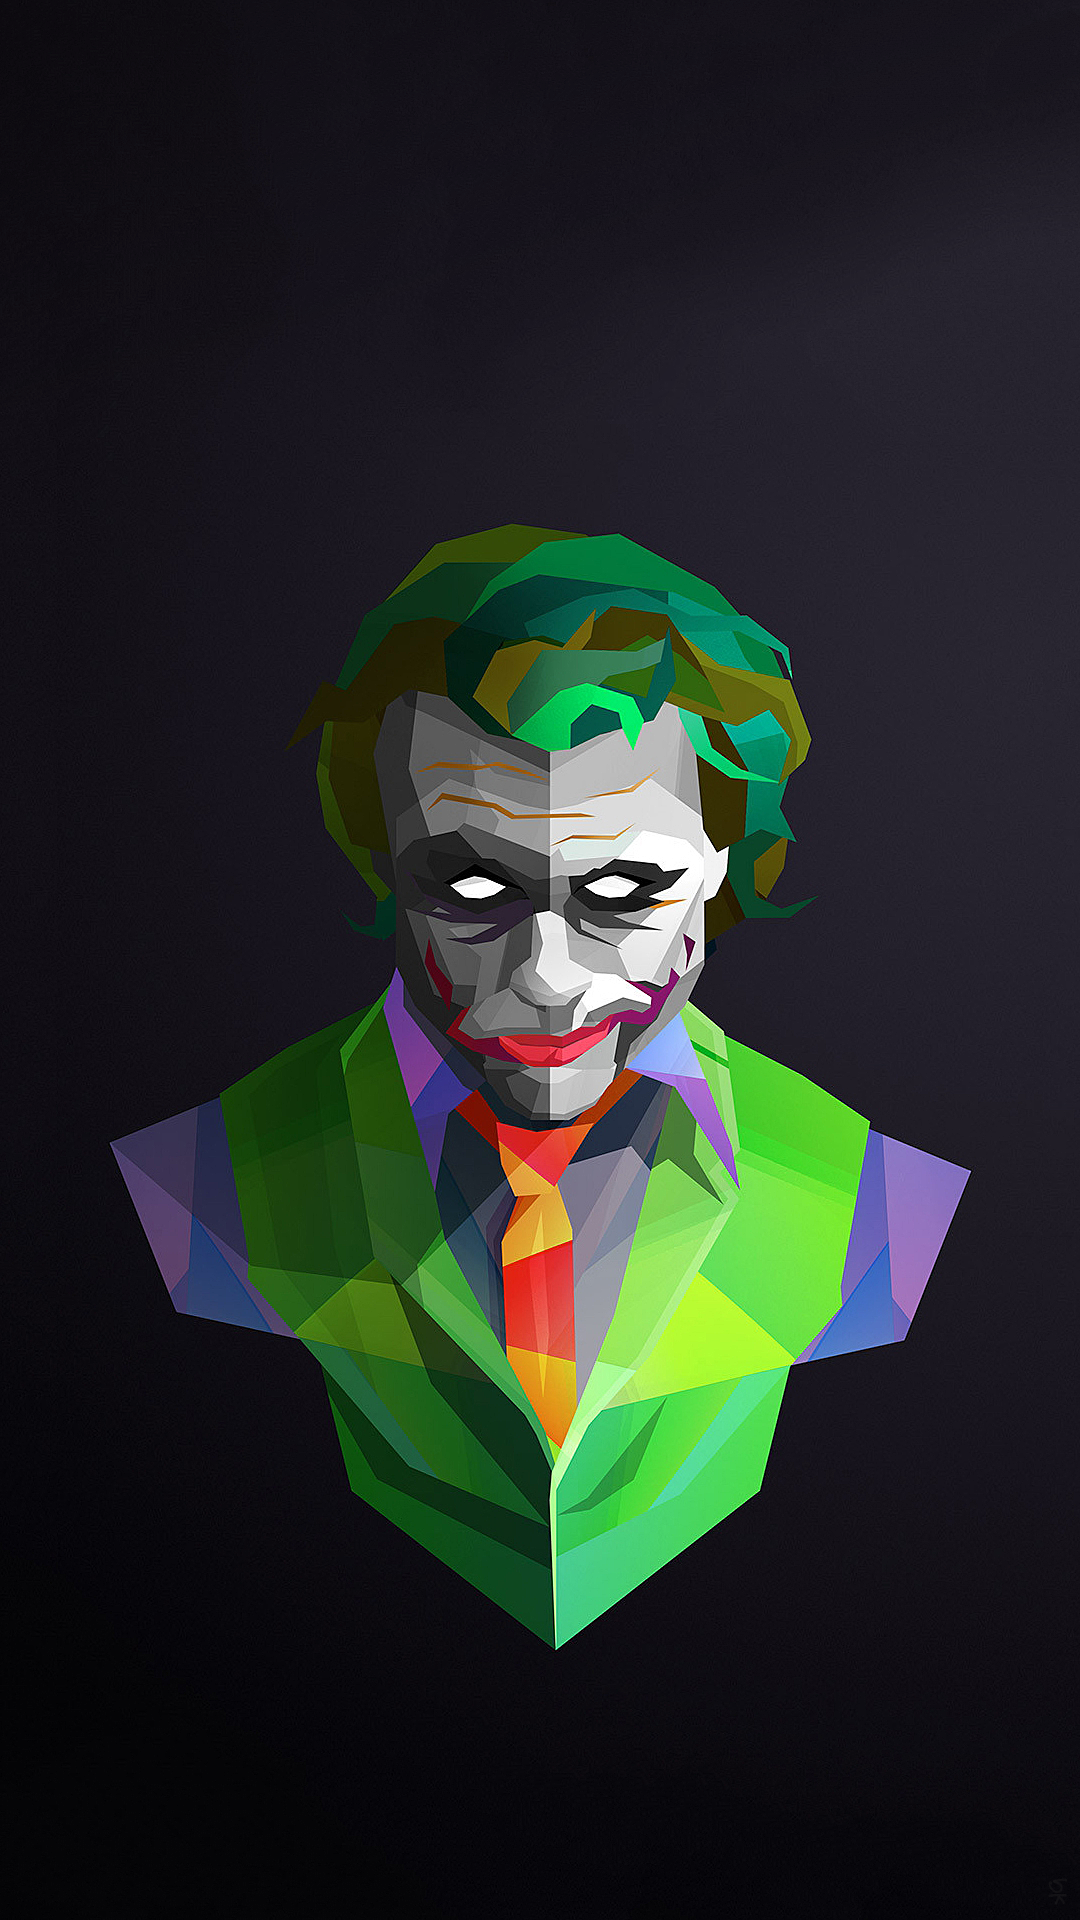 Iphone Joker Wallpaper